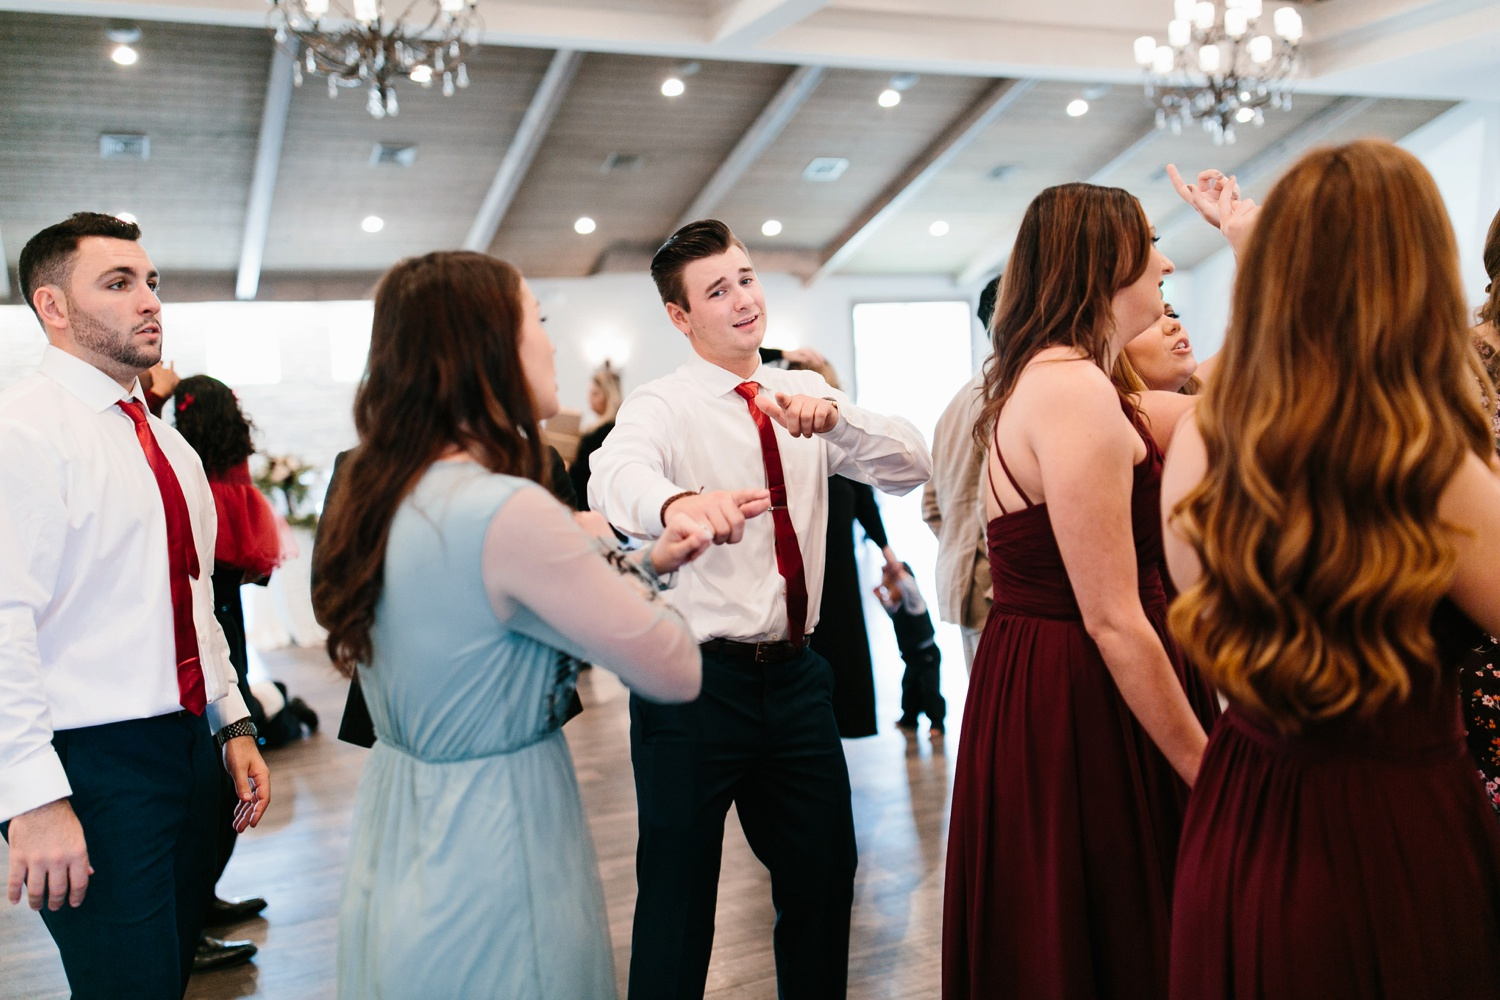 Grant + Lysette | a vibrant, deep burgundy and navy, and mixed metals wedding at Hidden Pines Chapel by North Texas Wedding Photographer Rachel Meagan Photography 184